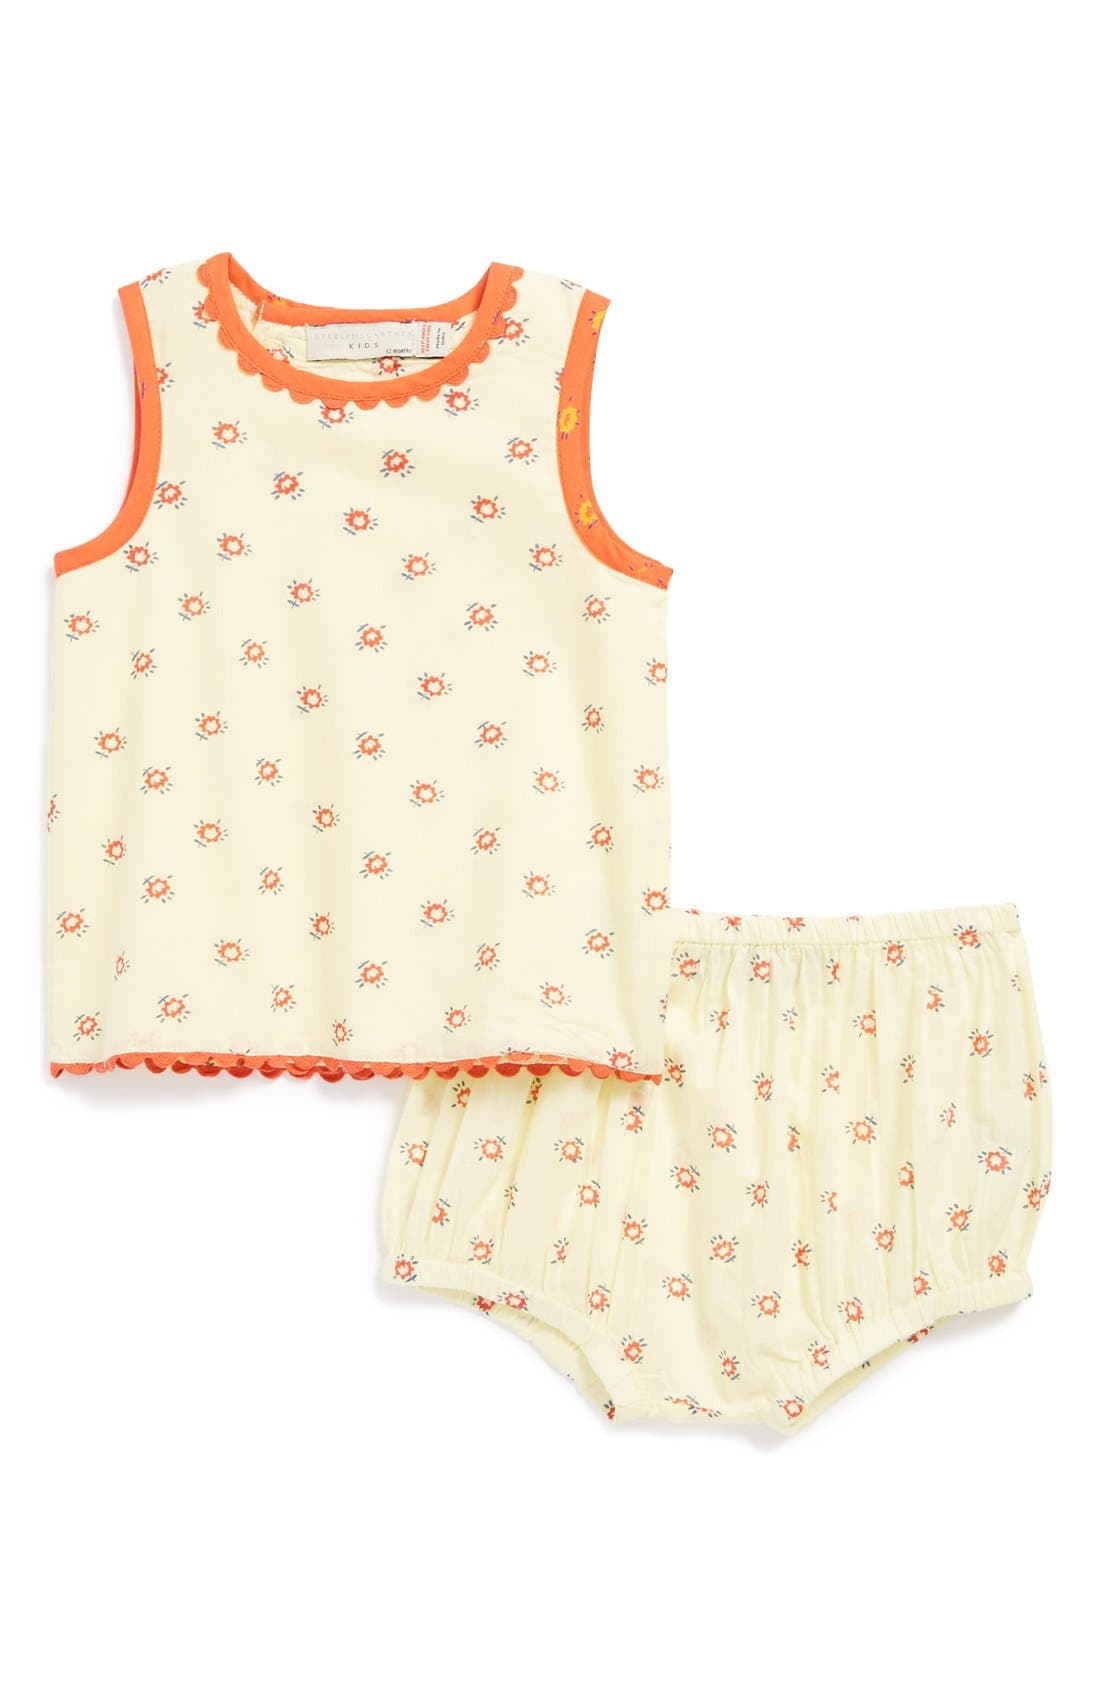 Main Image - Stella McCartney Kids 'Trixie' Tank Top & Bloomers (Baby Girls)